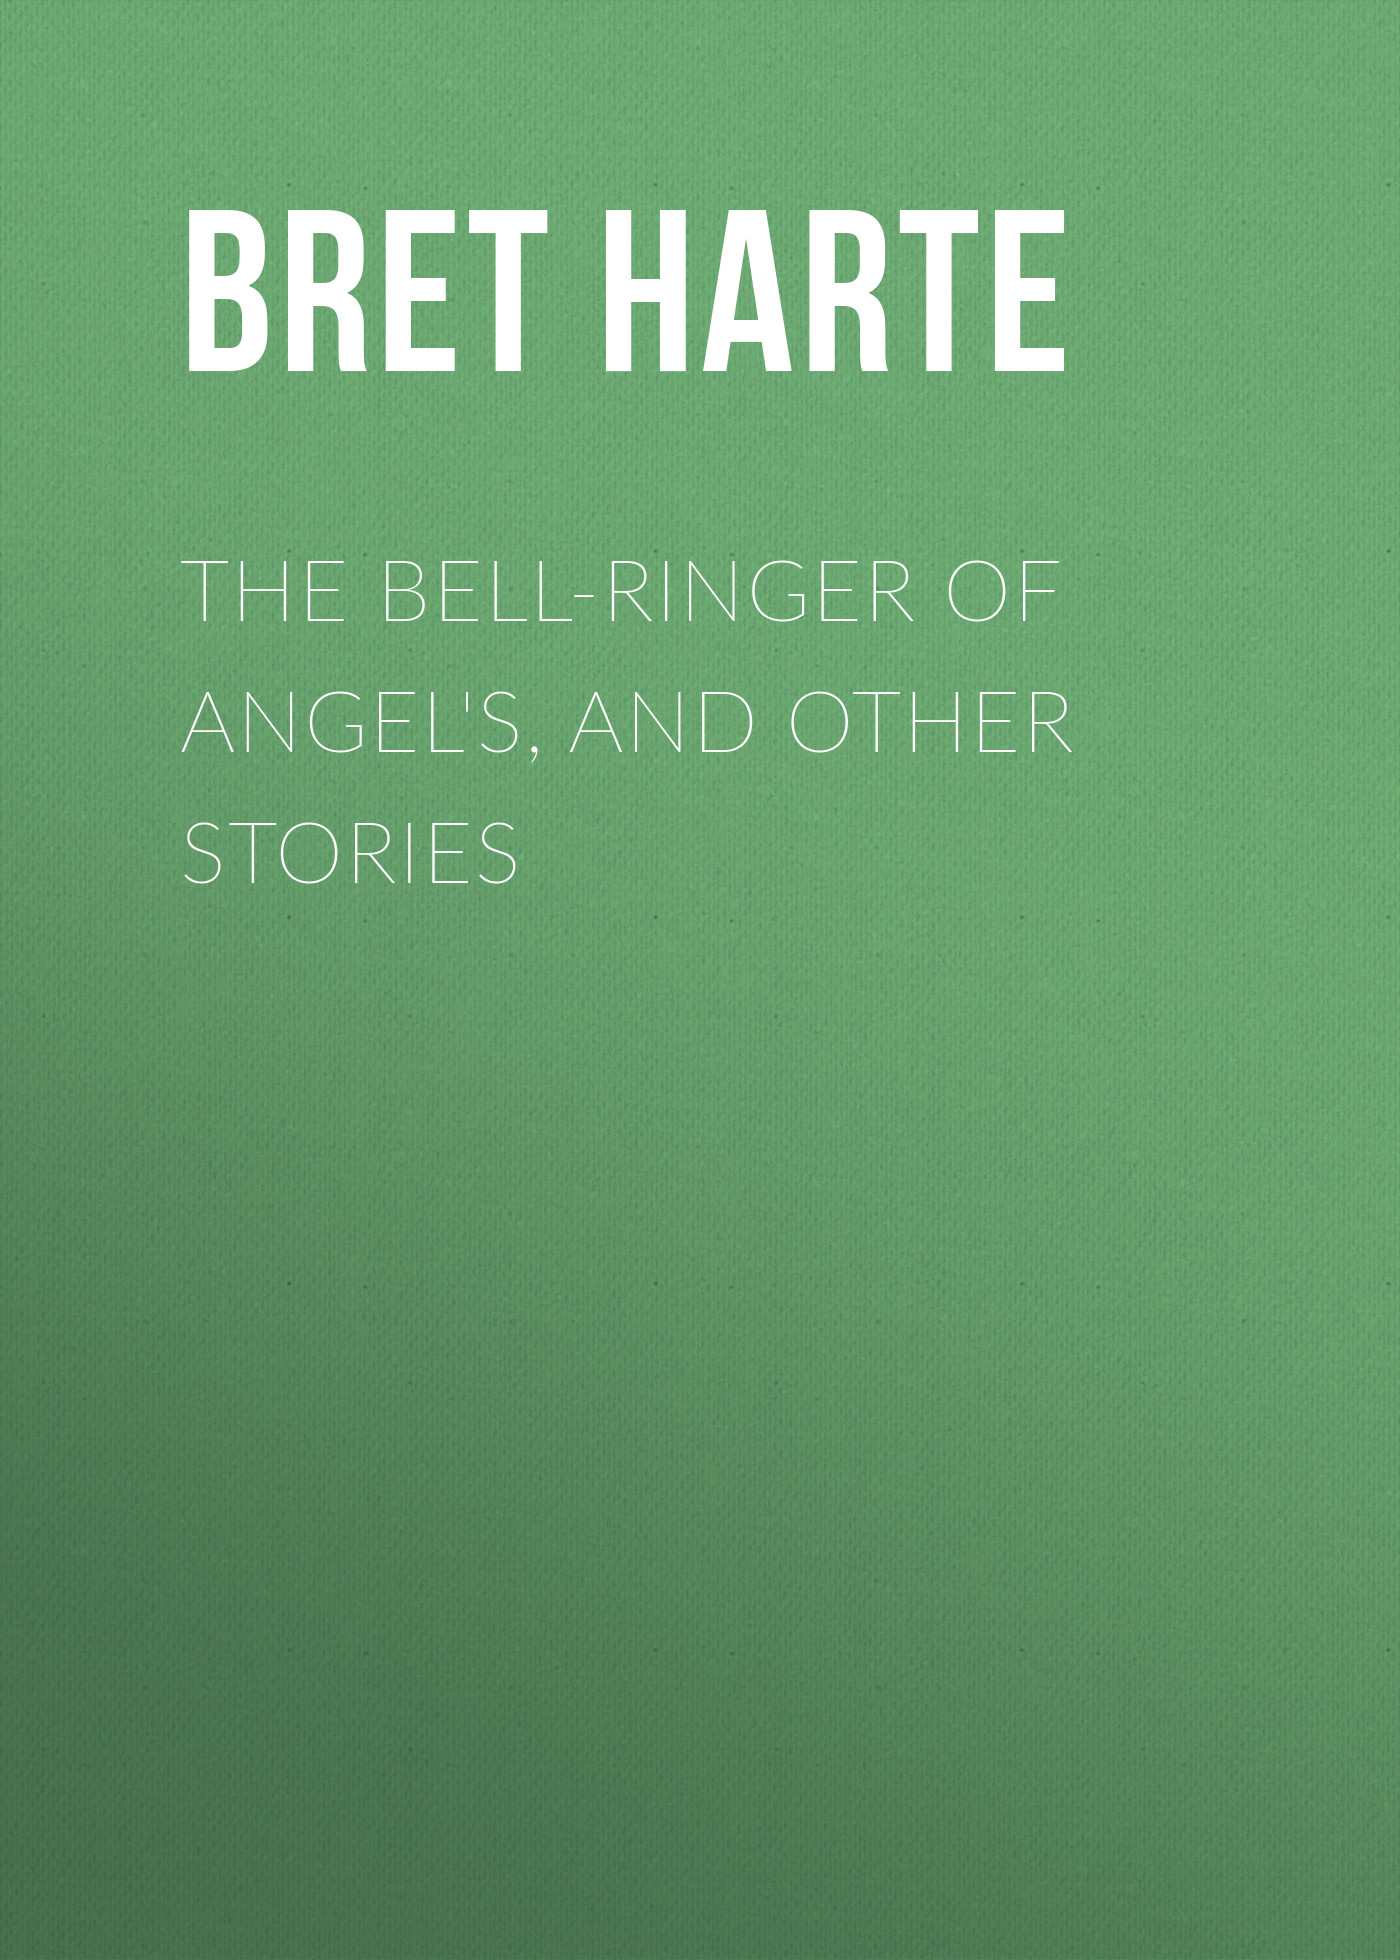 Bret Harte The Bell-Ringer of Angel's, and Other Stories monsters and other stories